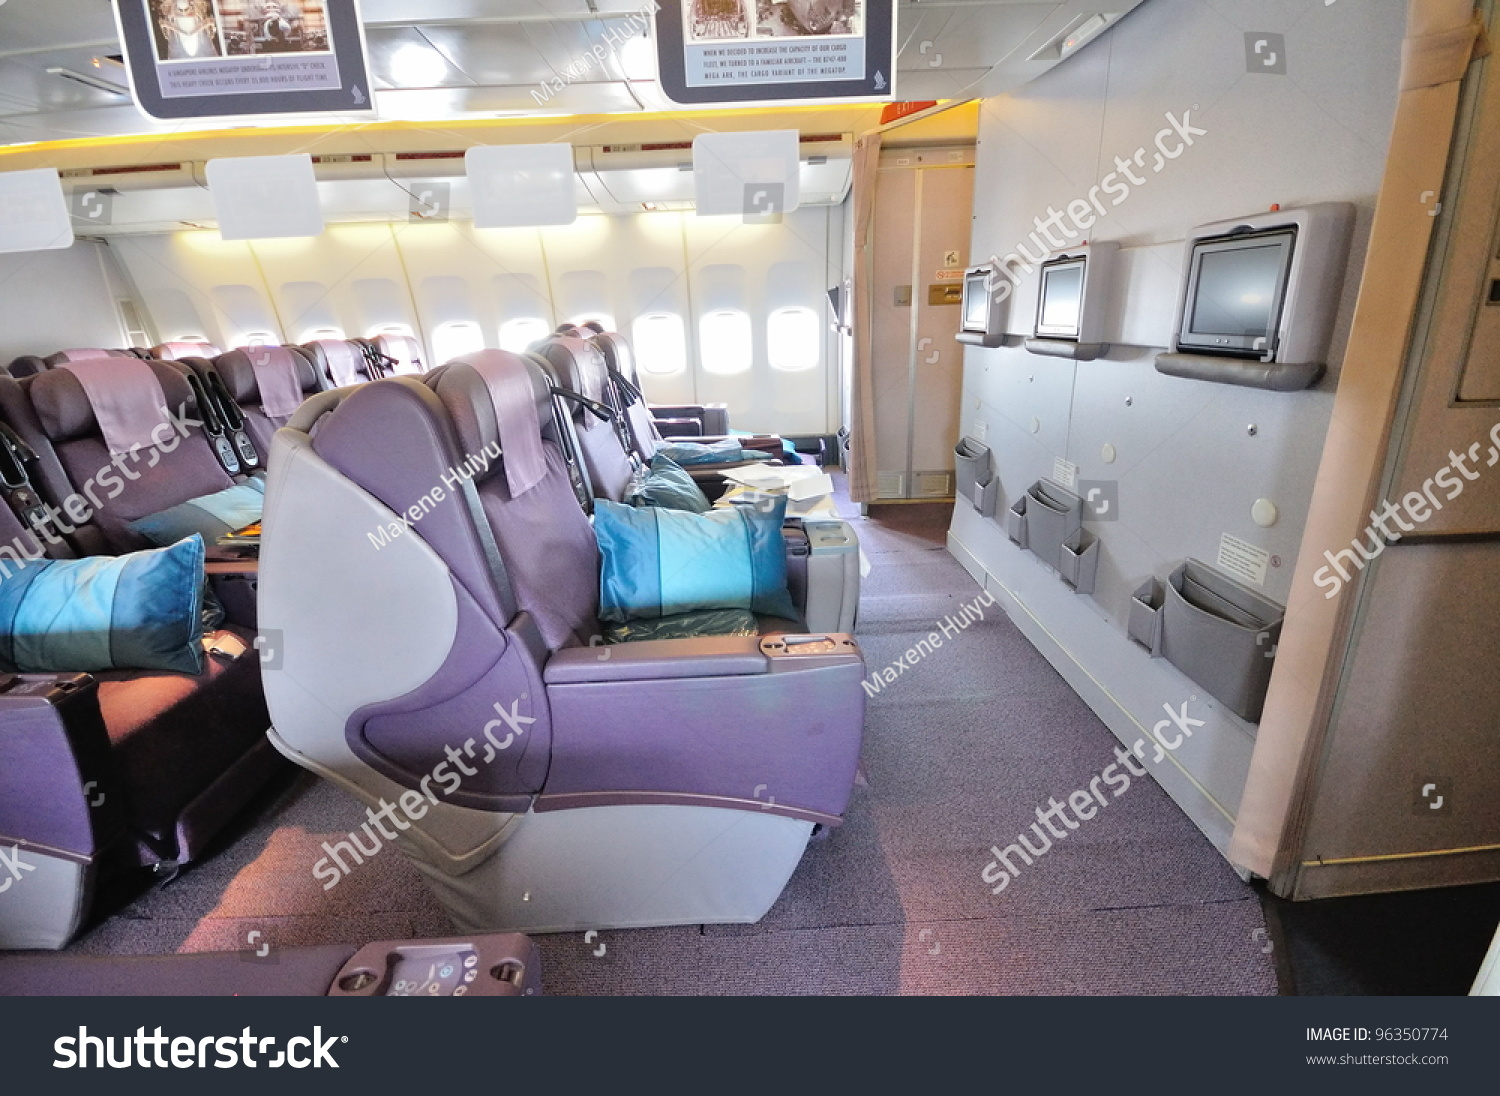 Singapore february 17 front row business stock photo 96350774 ...